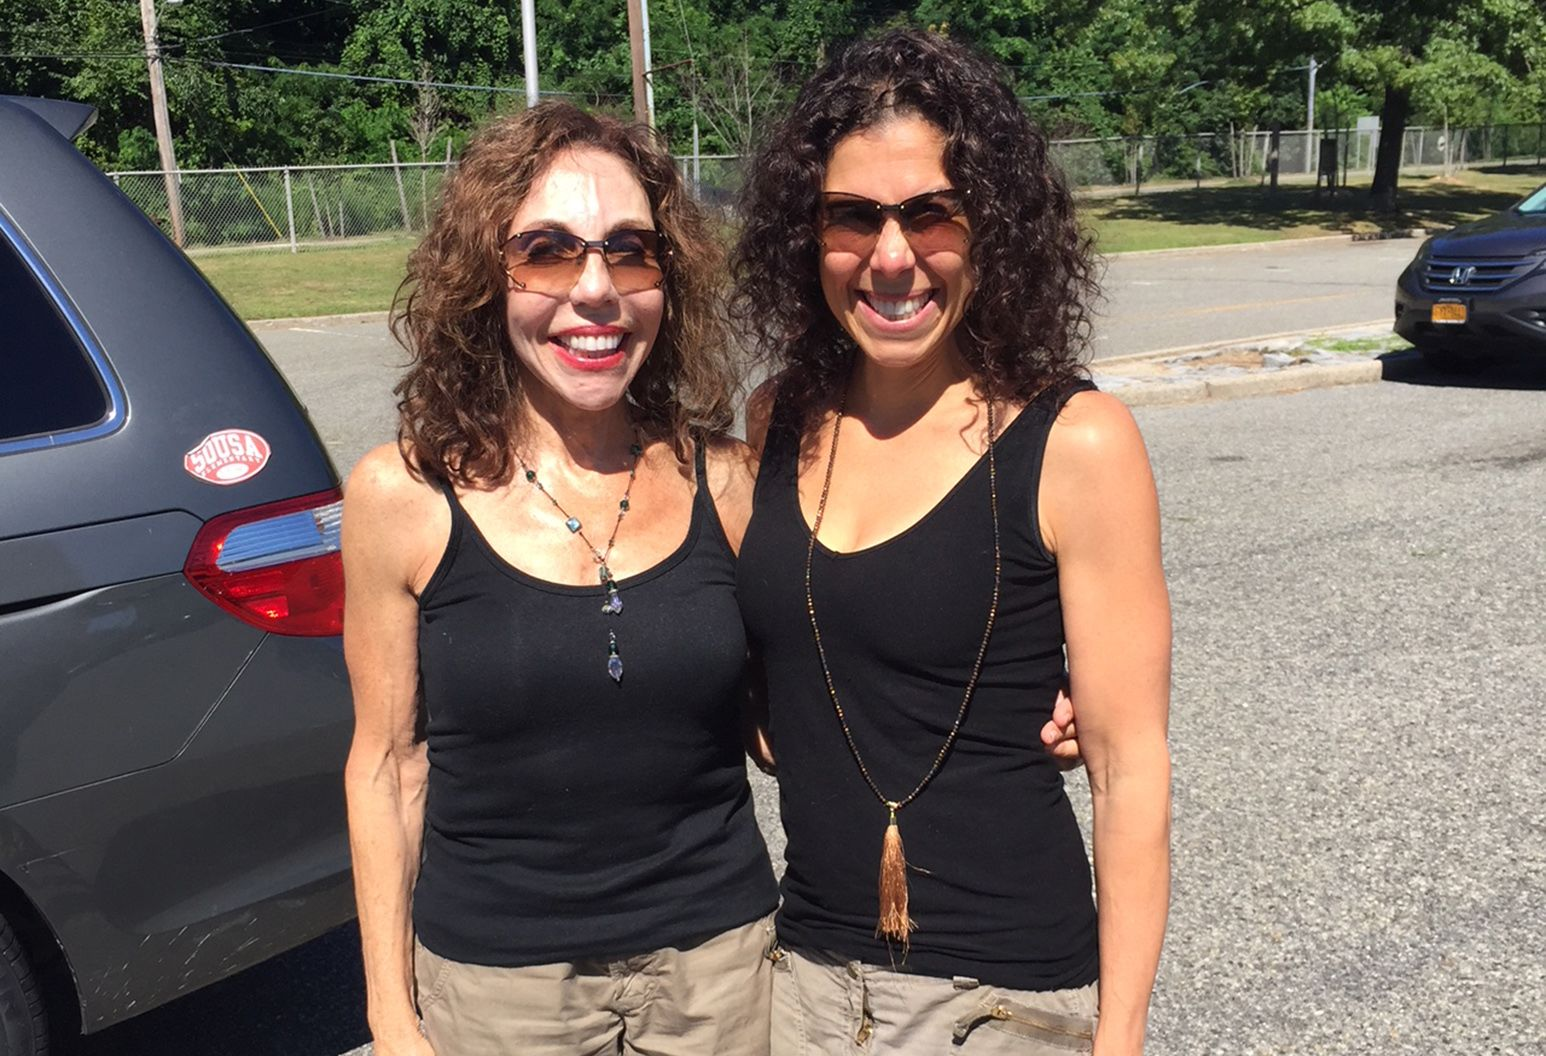 Two smiling women in matching outfits posing for a photo. They are wearing black tops, khaki bottoms, and their sunglasses have the same lens shade color.